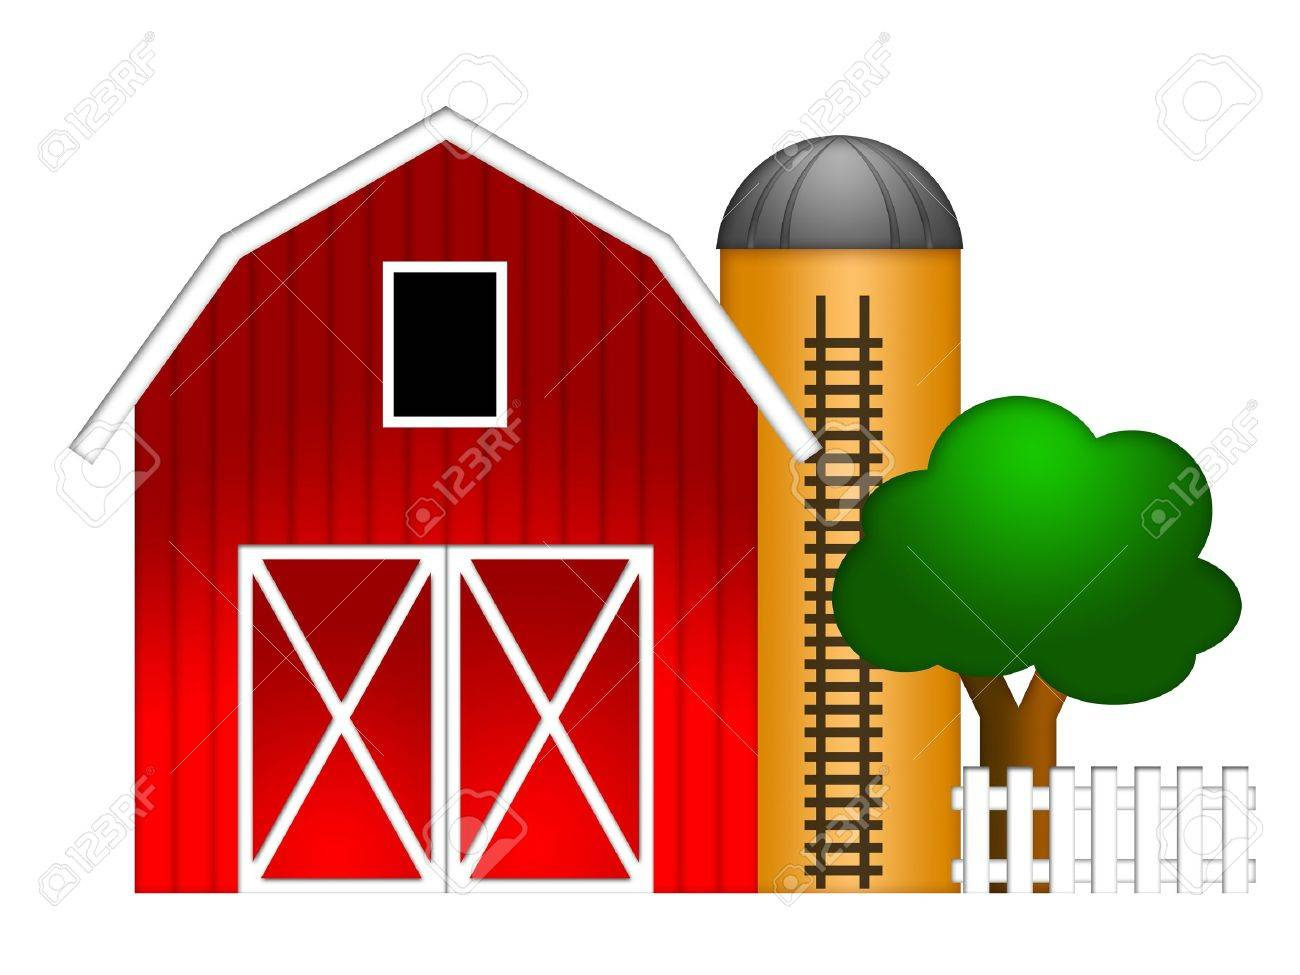 Cartoon red barn doors - Barn Door Red Barn With Grain Elevator Silo And Tree Illustration Isolated On White Background